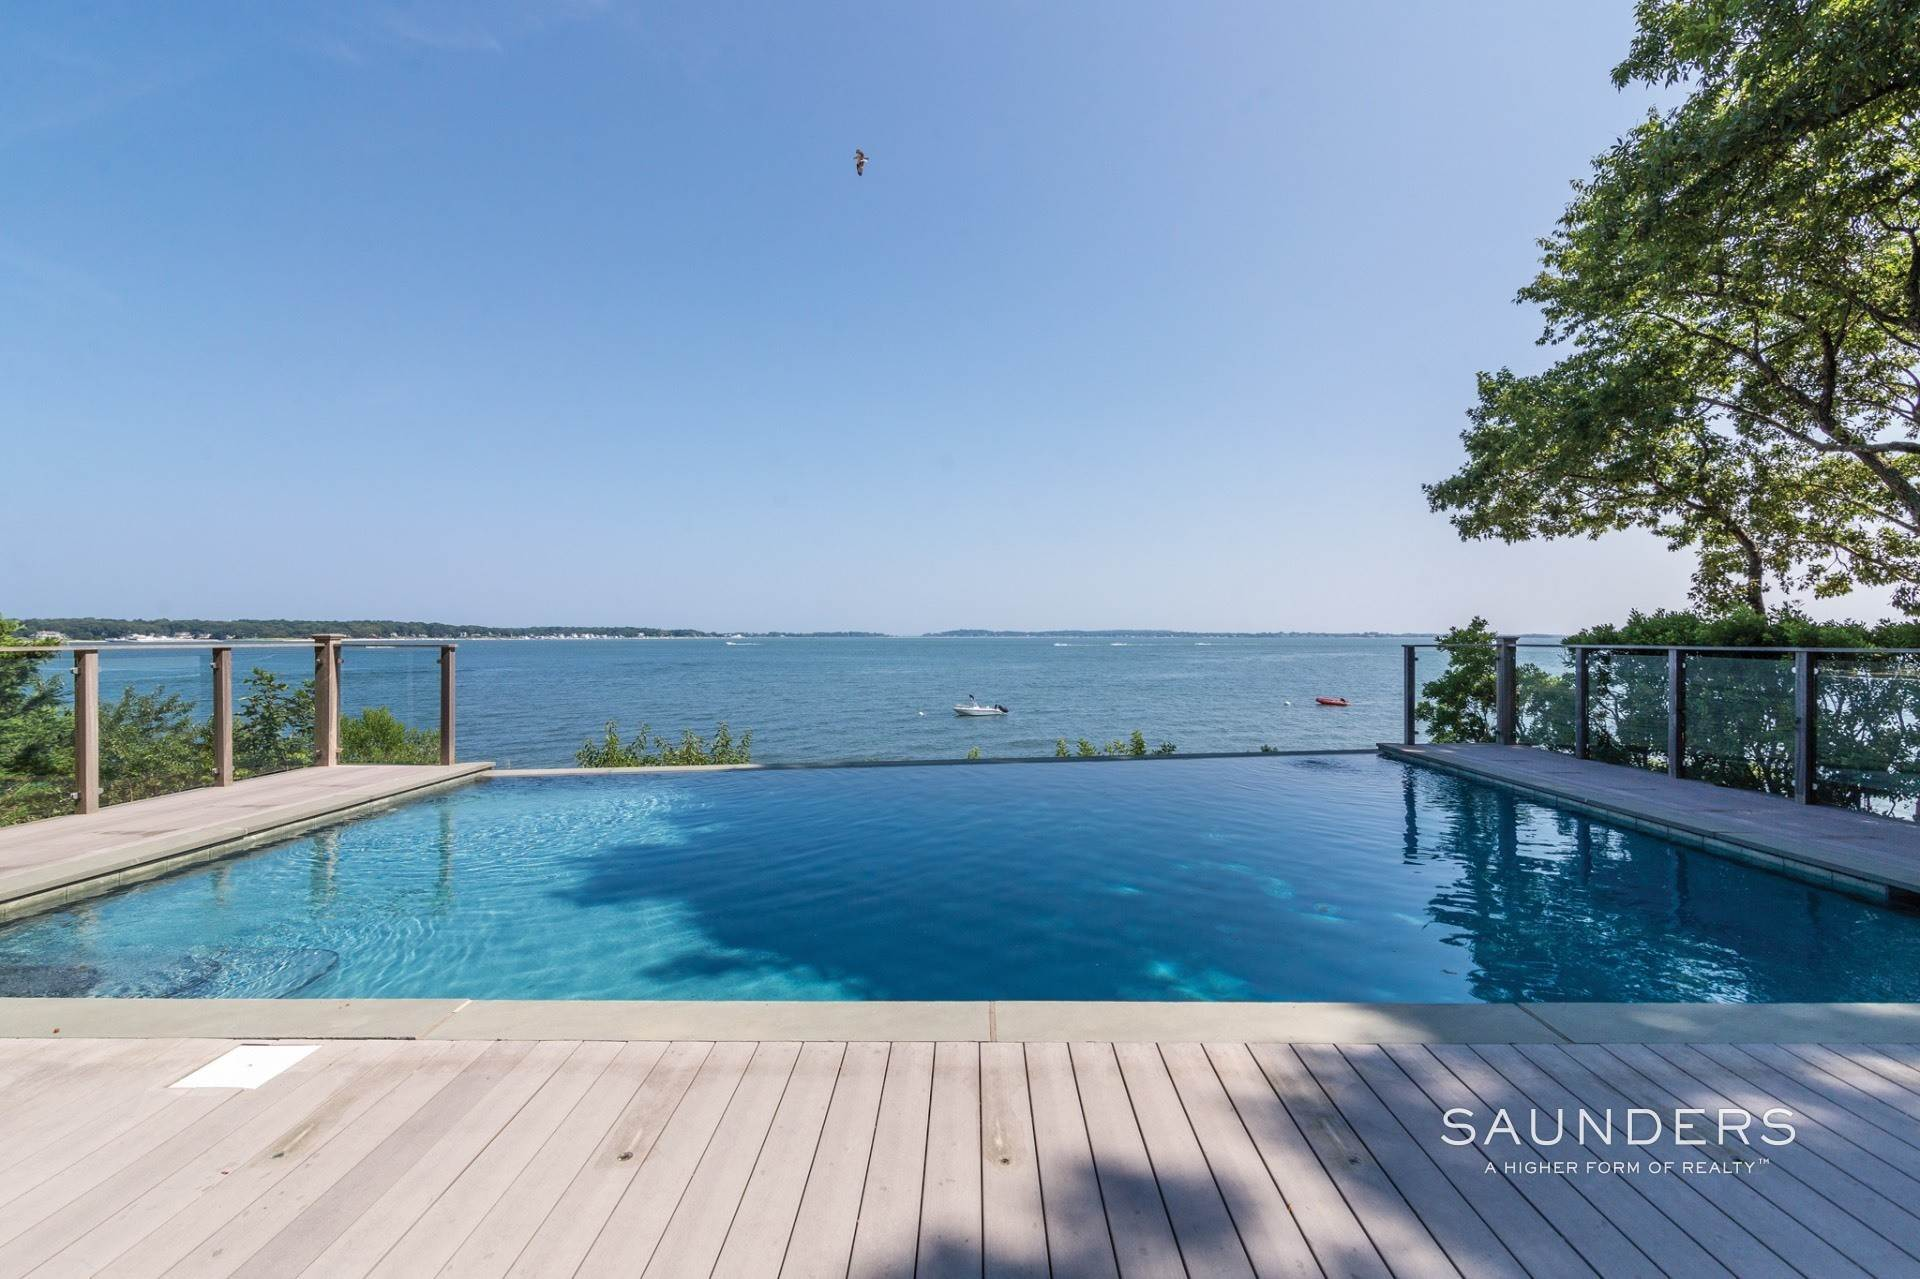 2. Single Family Homes for Sale at Shelter Island Bayfront With Infinity Edge Pool And Sandy Beach 17 Point Lane, Shelter Island Heights, Shelter Island, NY 11964